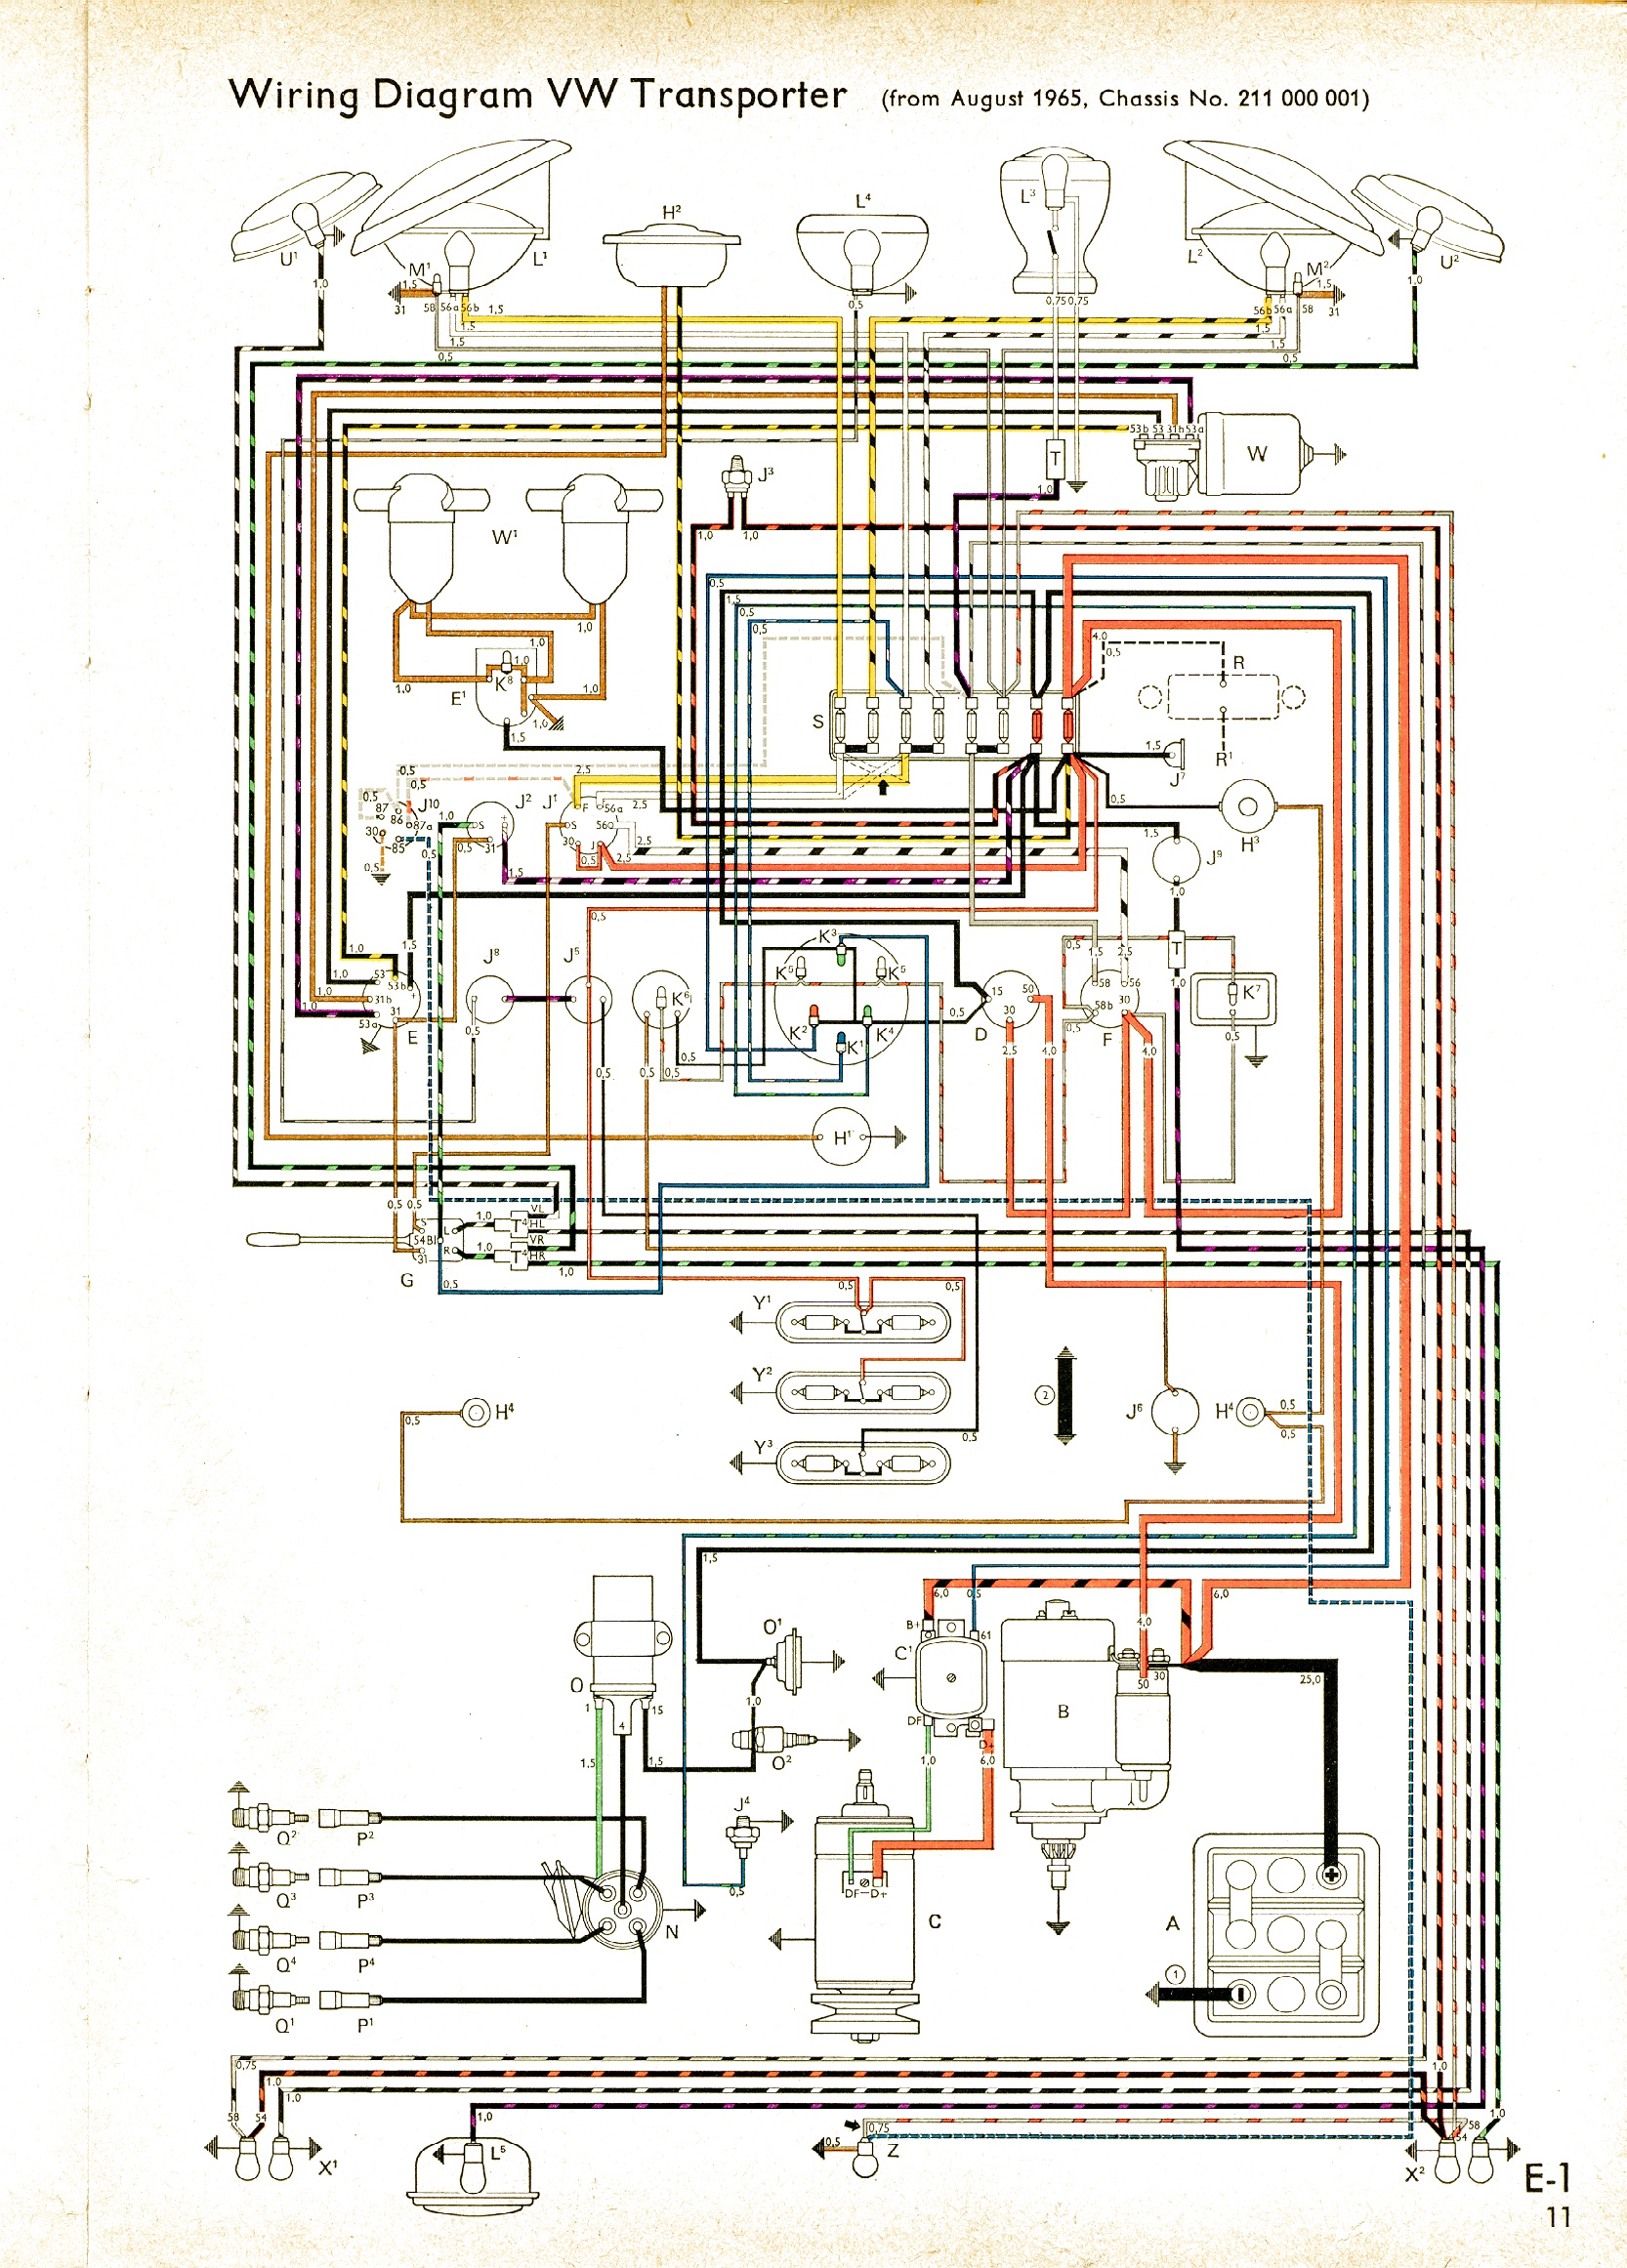 bus 65 vintagebus com vw bus (and other) wiring diagrams vw beetle 2002 radio wiring diagram at nearapp.co